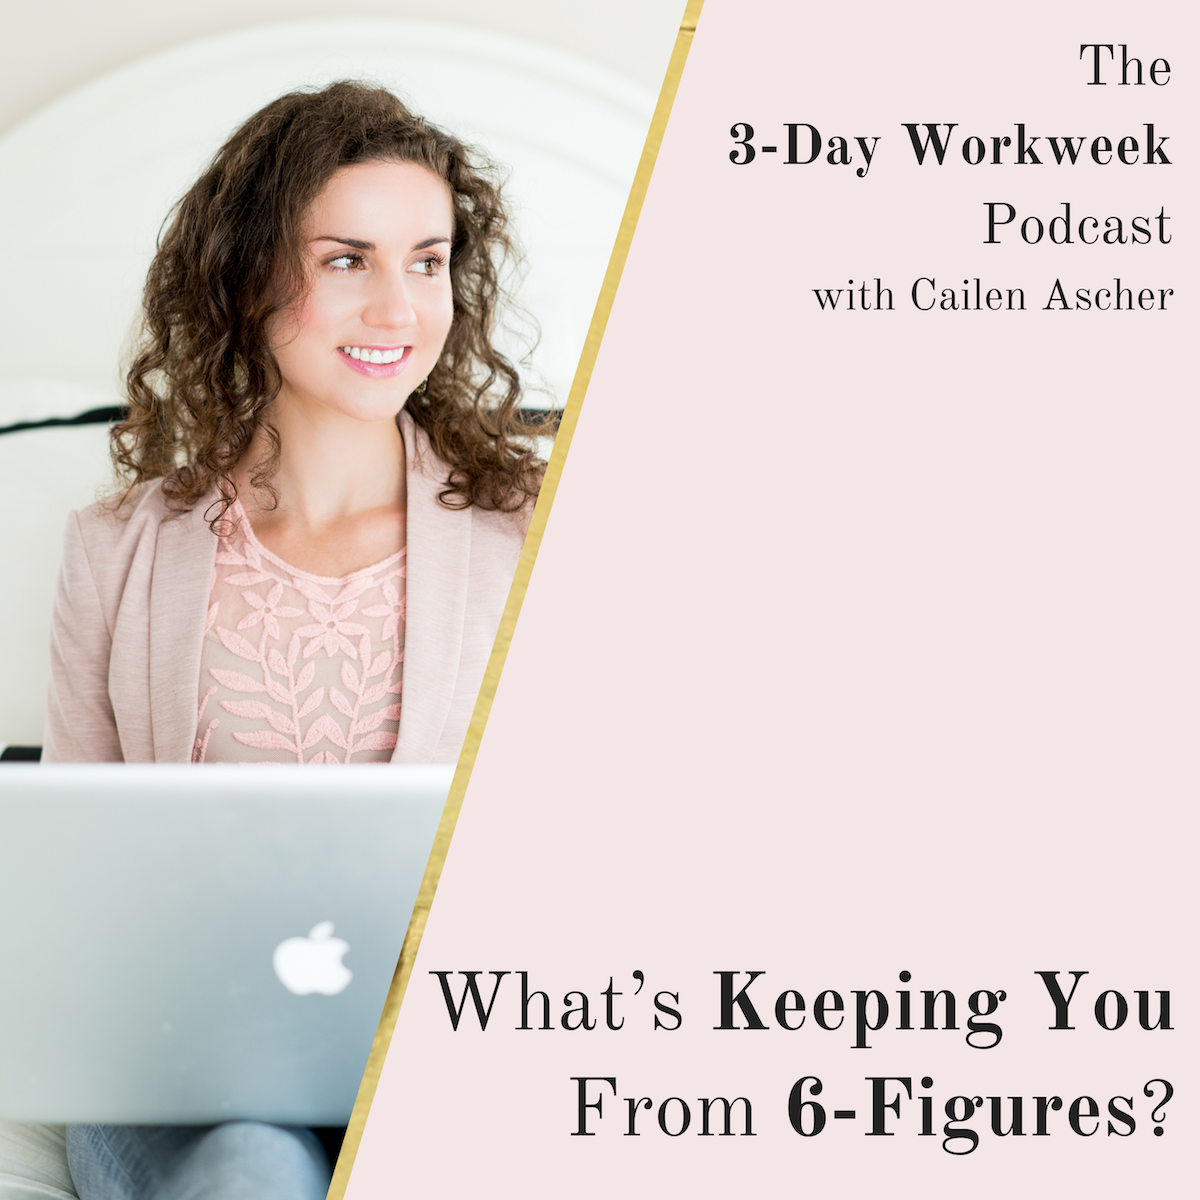 The 3-Day Workweek Podcast with Cailen Ascher - 2019-05-22 - Are you ready for 6-figures?.png